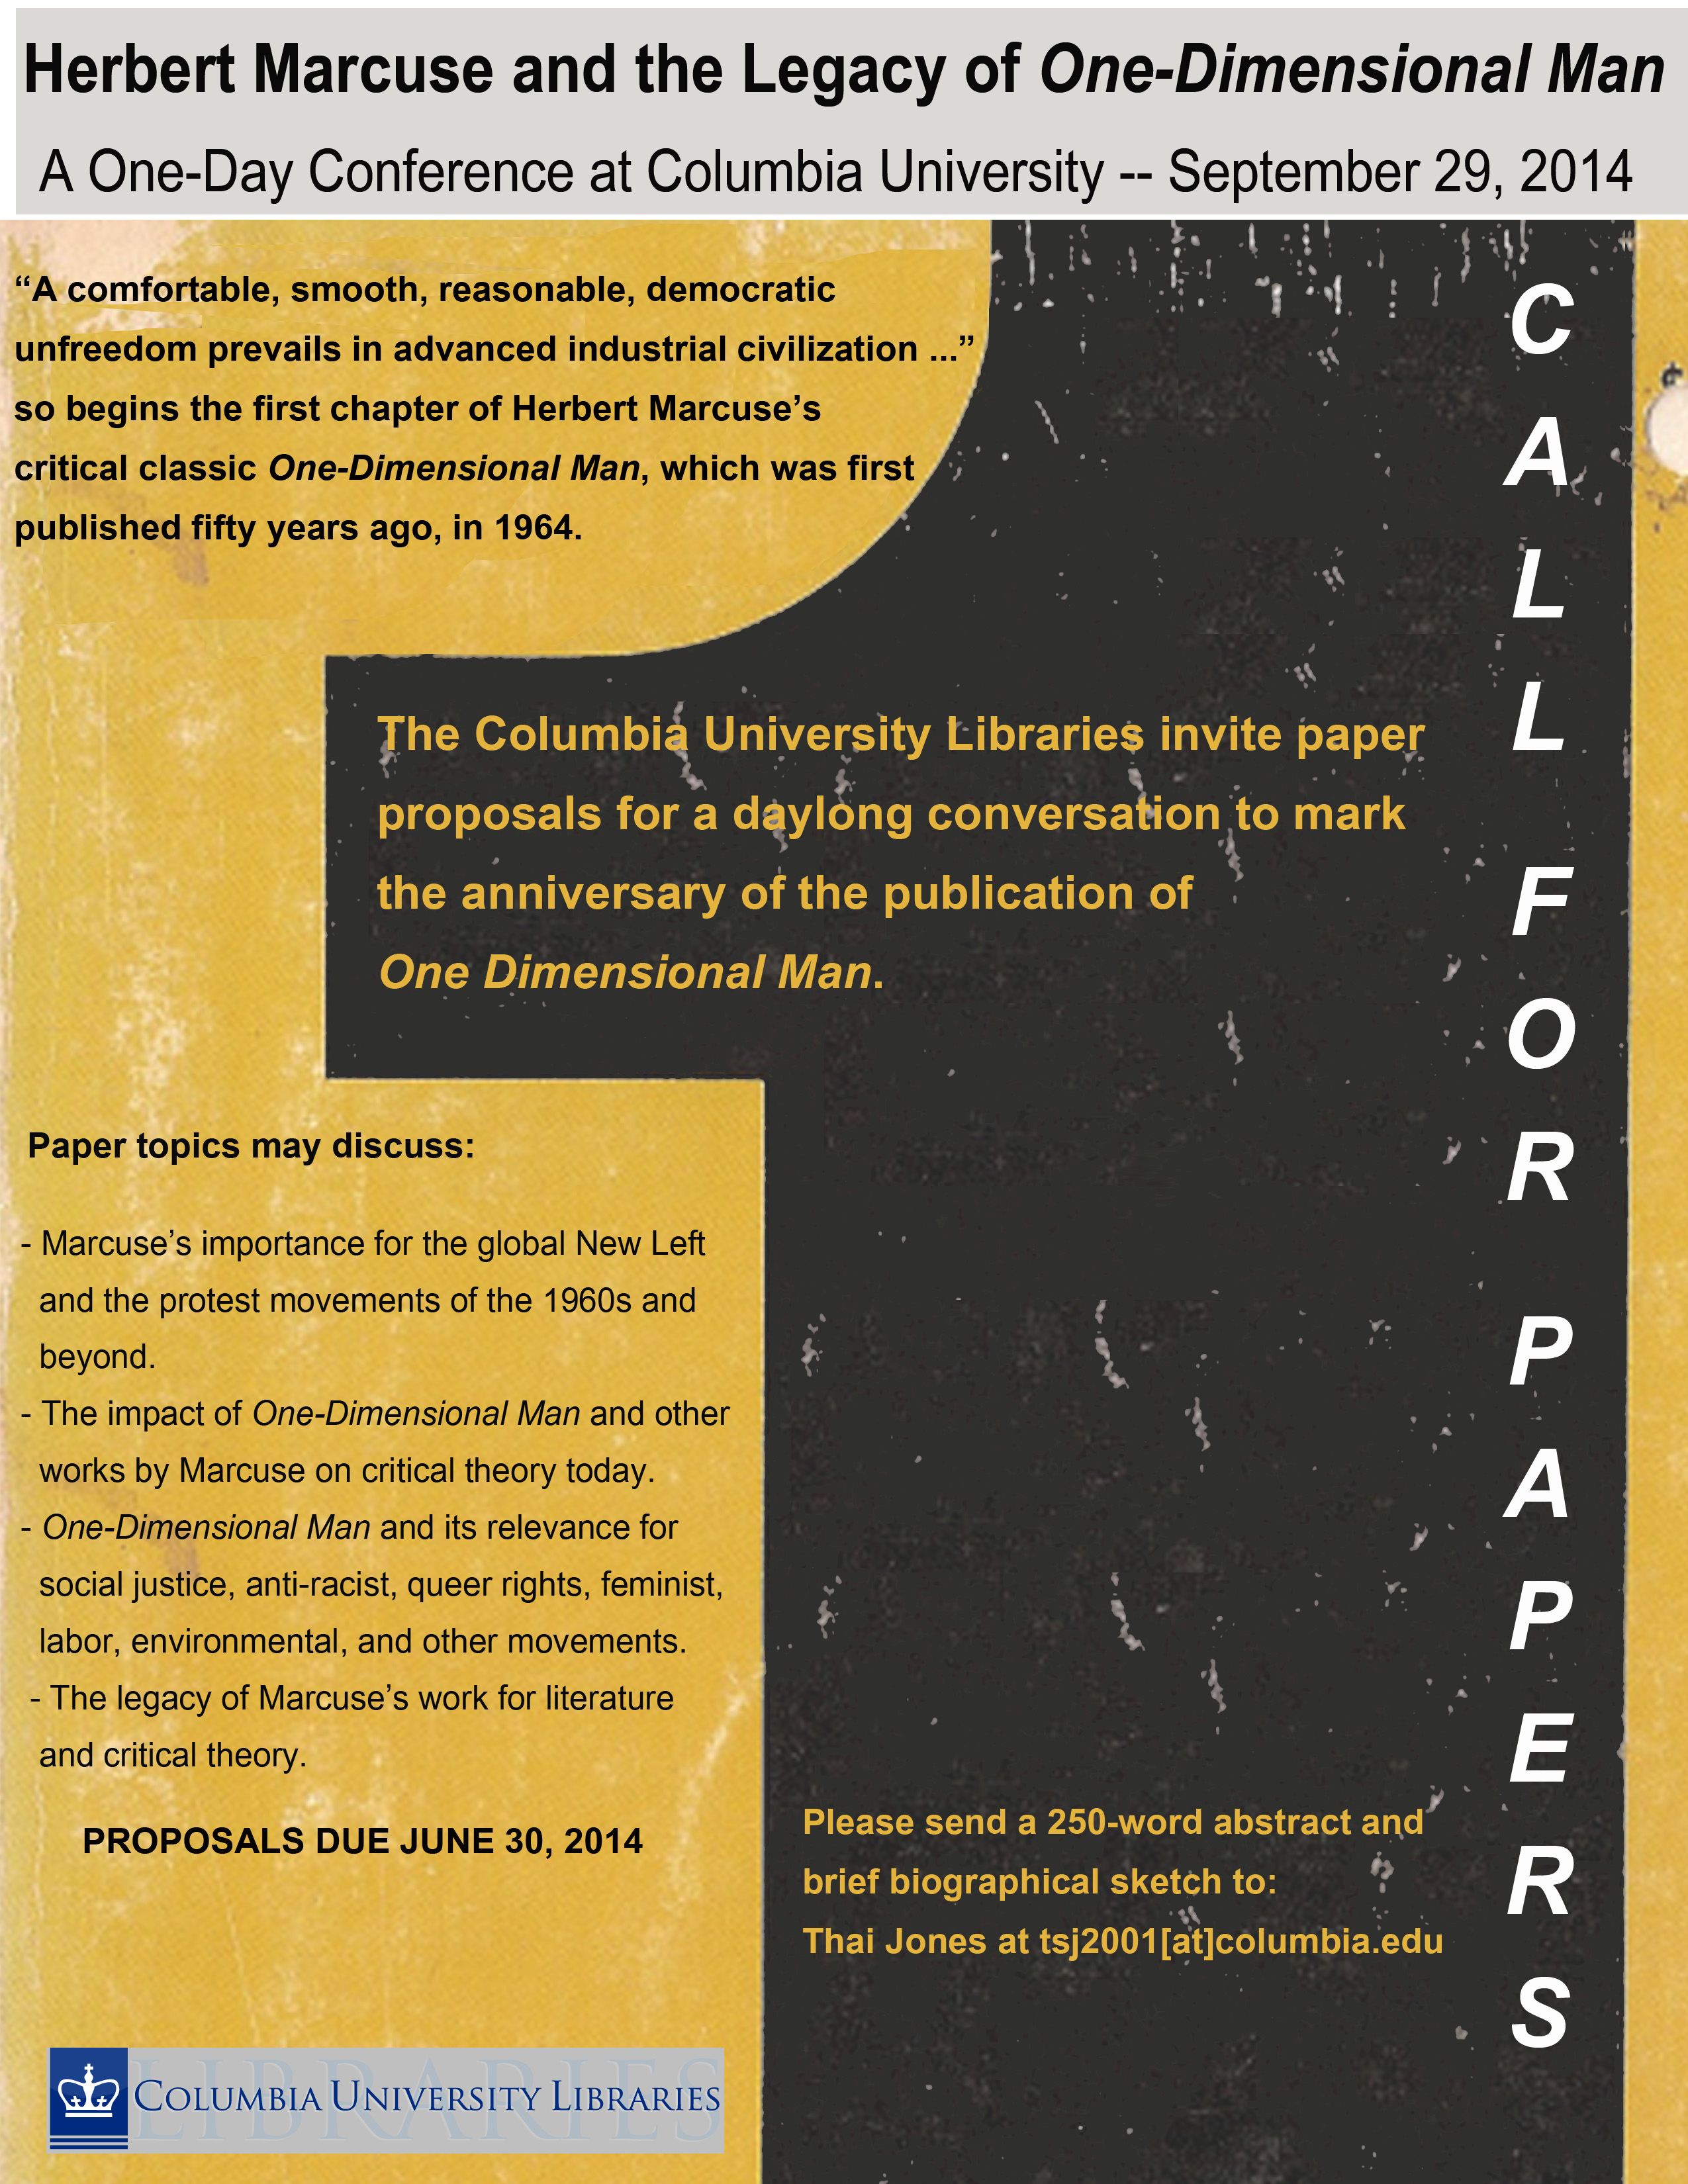 CALL FOR PAPERS (deadline: June 30, 2014)